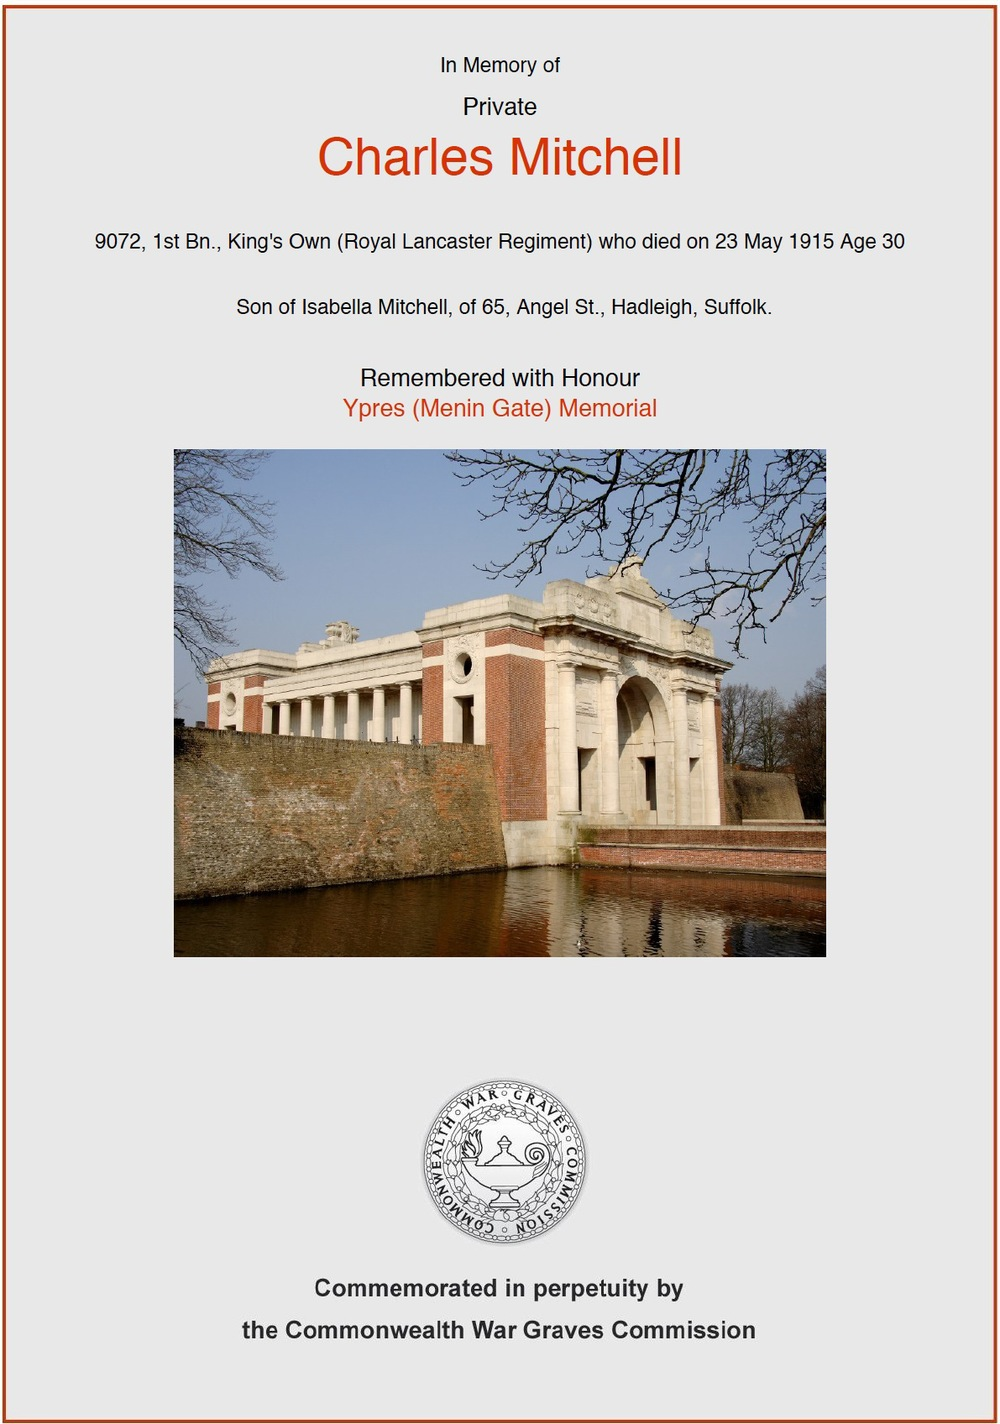 Charles Mitchell's CWGC Commemorative Certificate